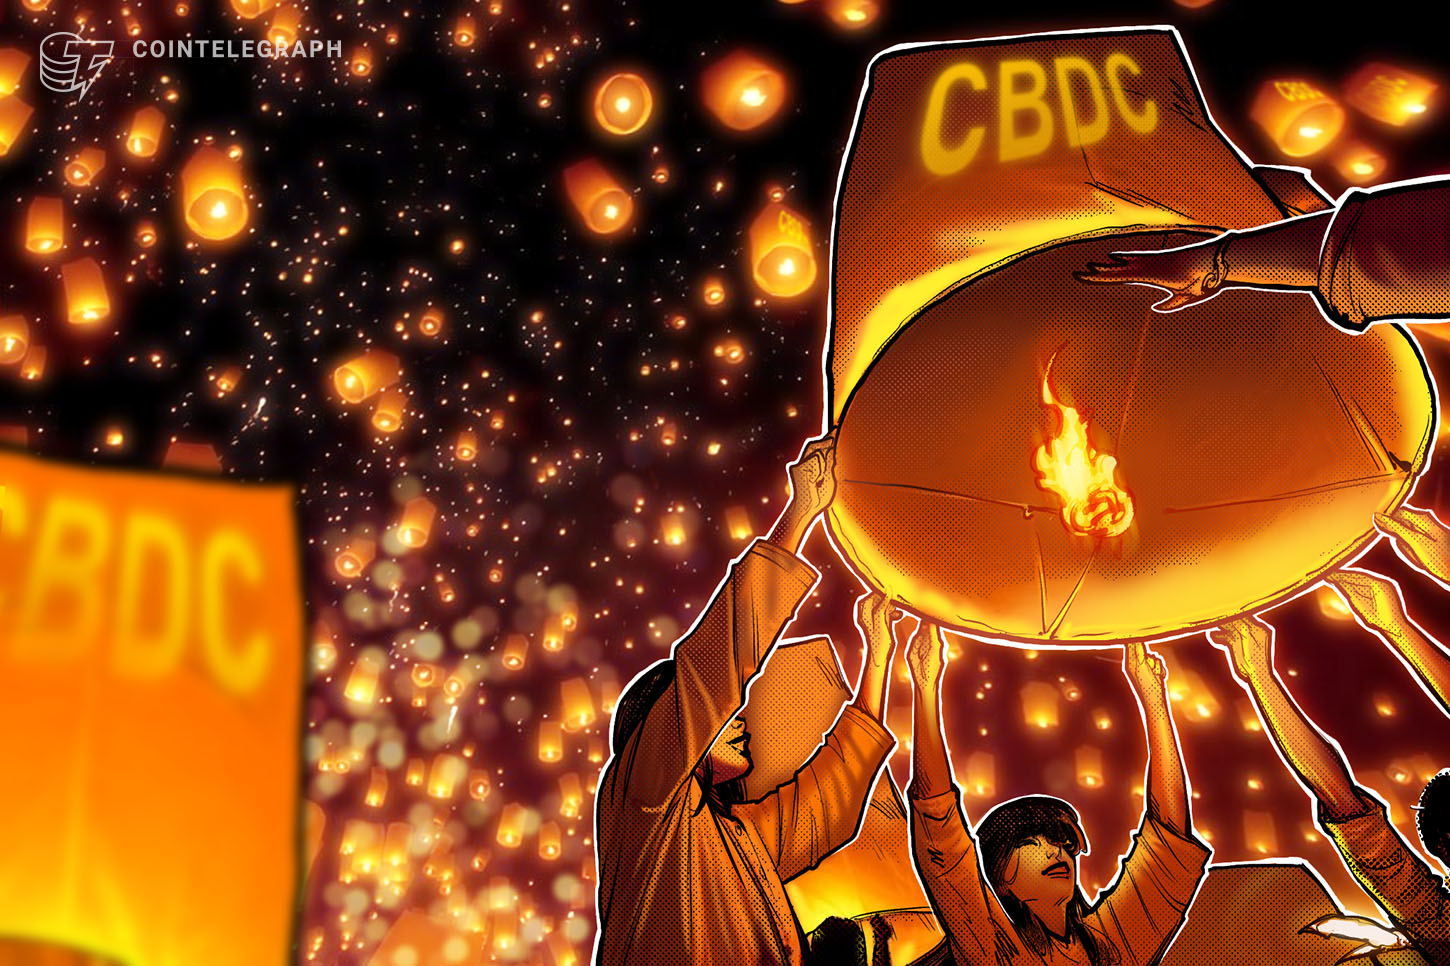 Hong Kong includes central bank digital currency in fintech strategy